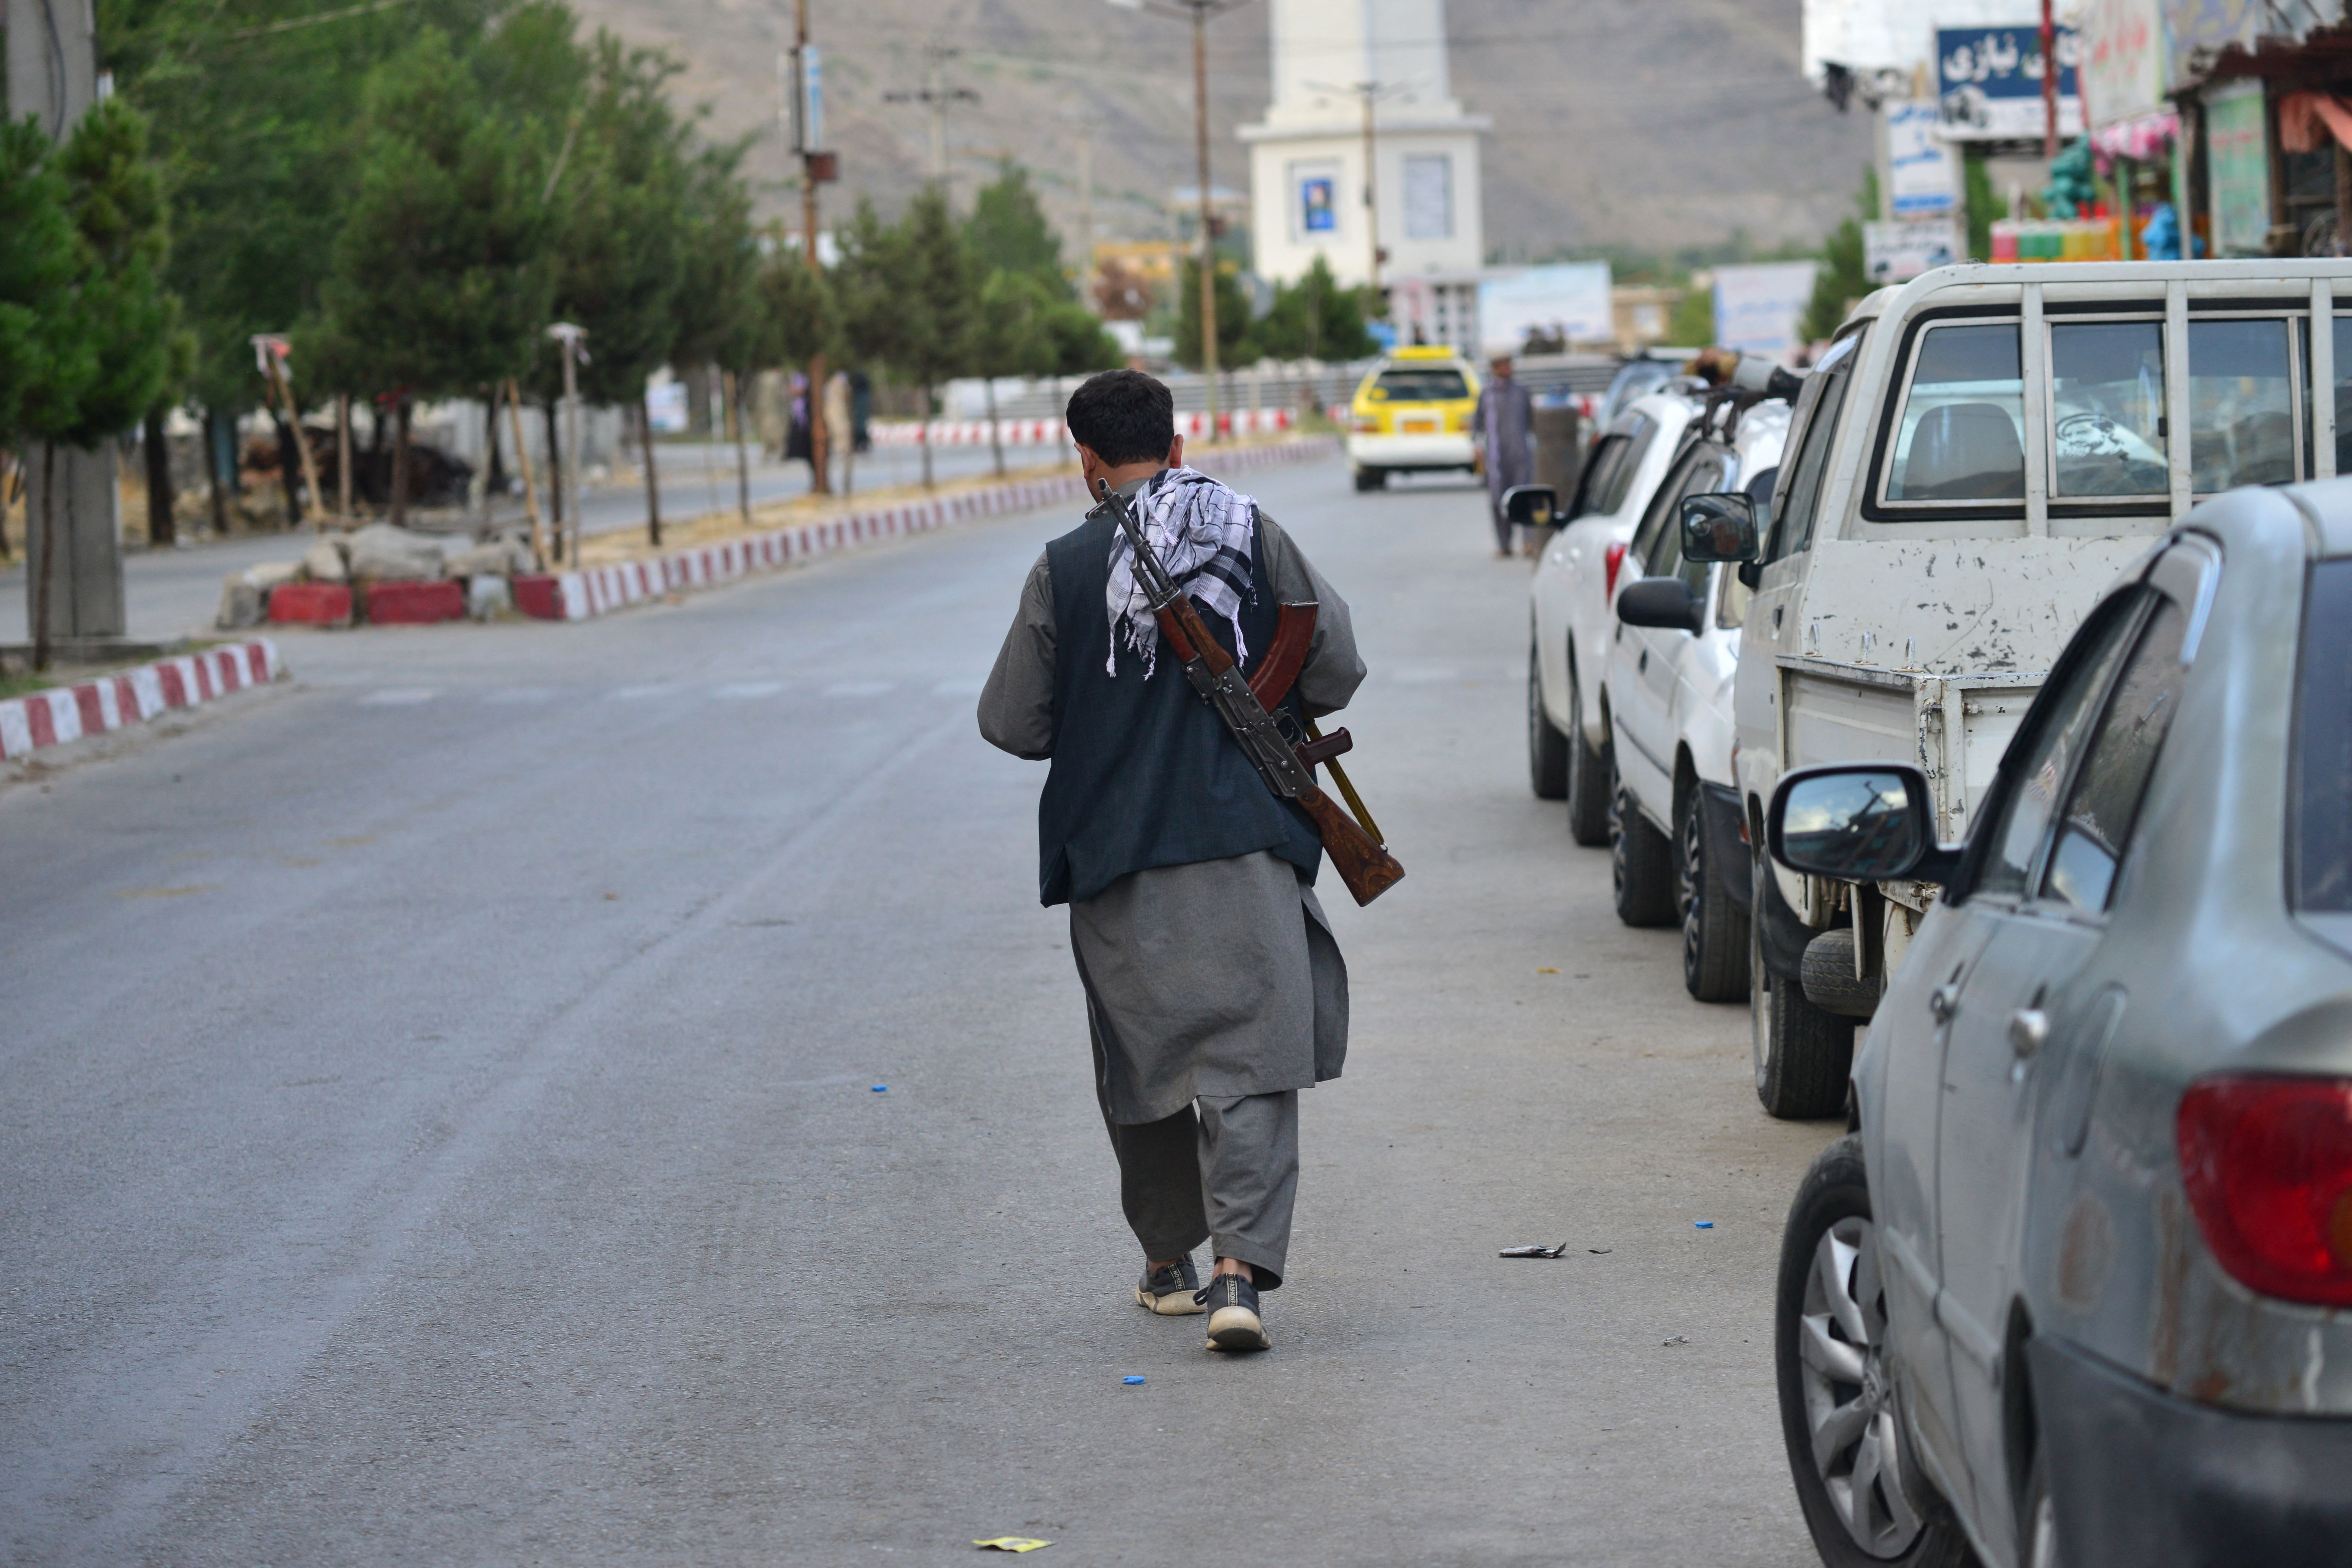 A member of Afghan security force walks through a road in Panjshir province on Sunday.